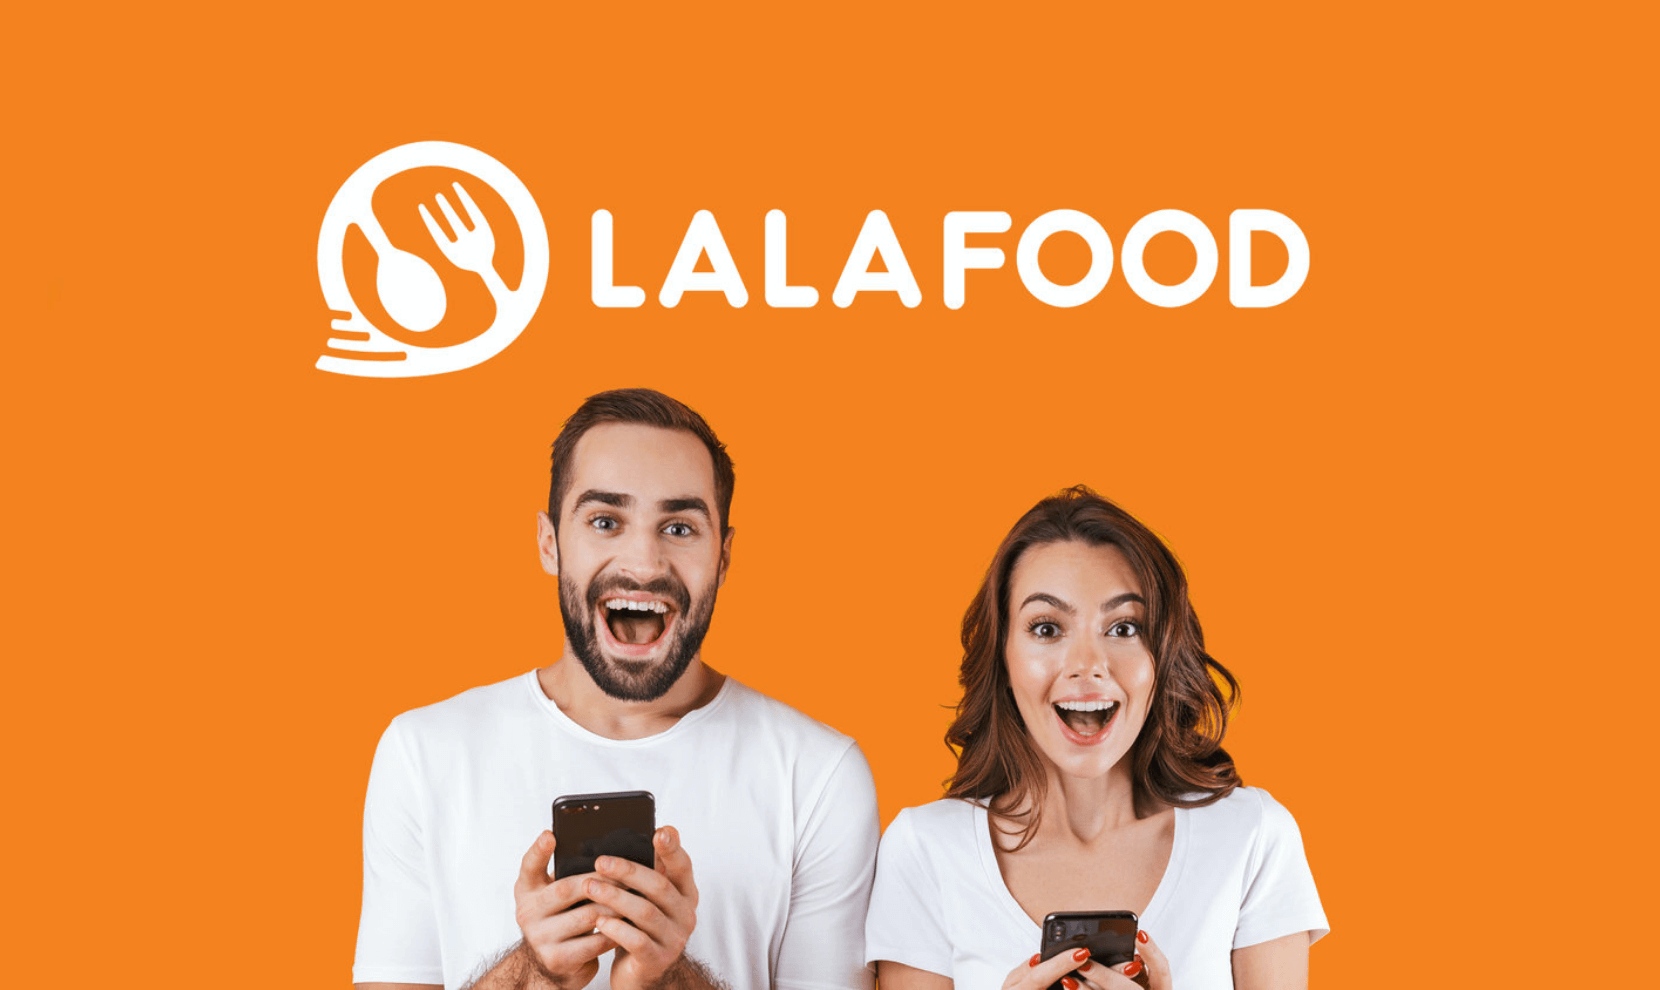 philippines-lalafood-to-end-service-on-feb-16